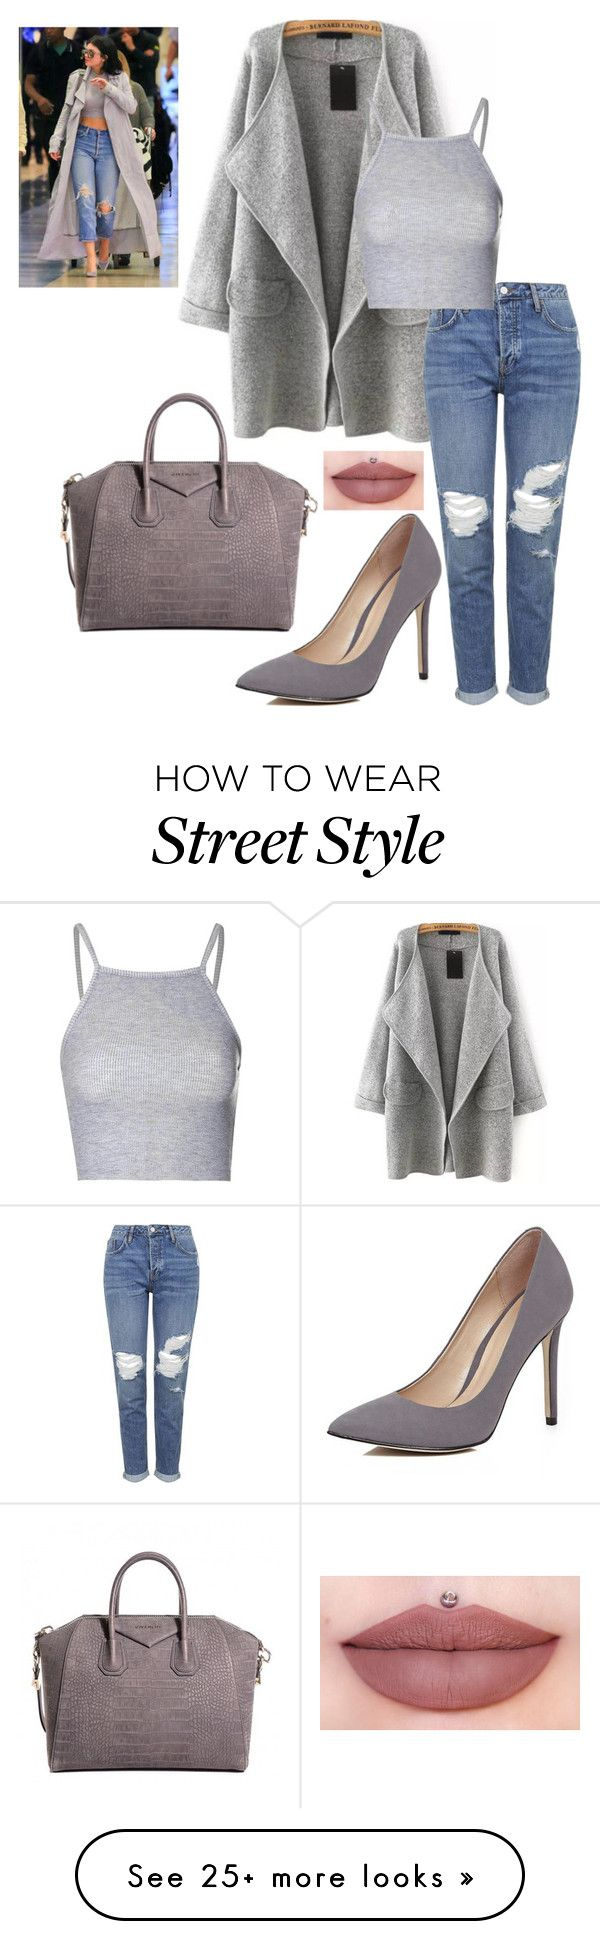 """3:33"" by lillirosemckbris on Polyvore featuring moda, Topshop, Glamorous, River Island e Givenchy"